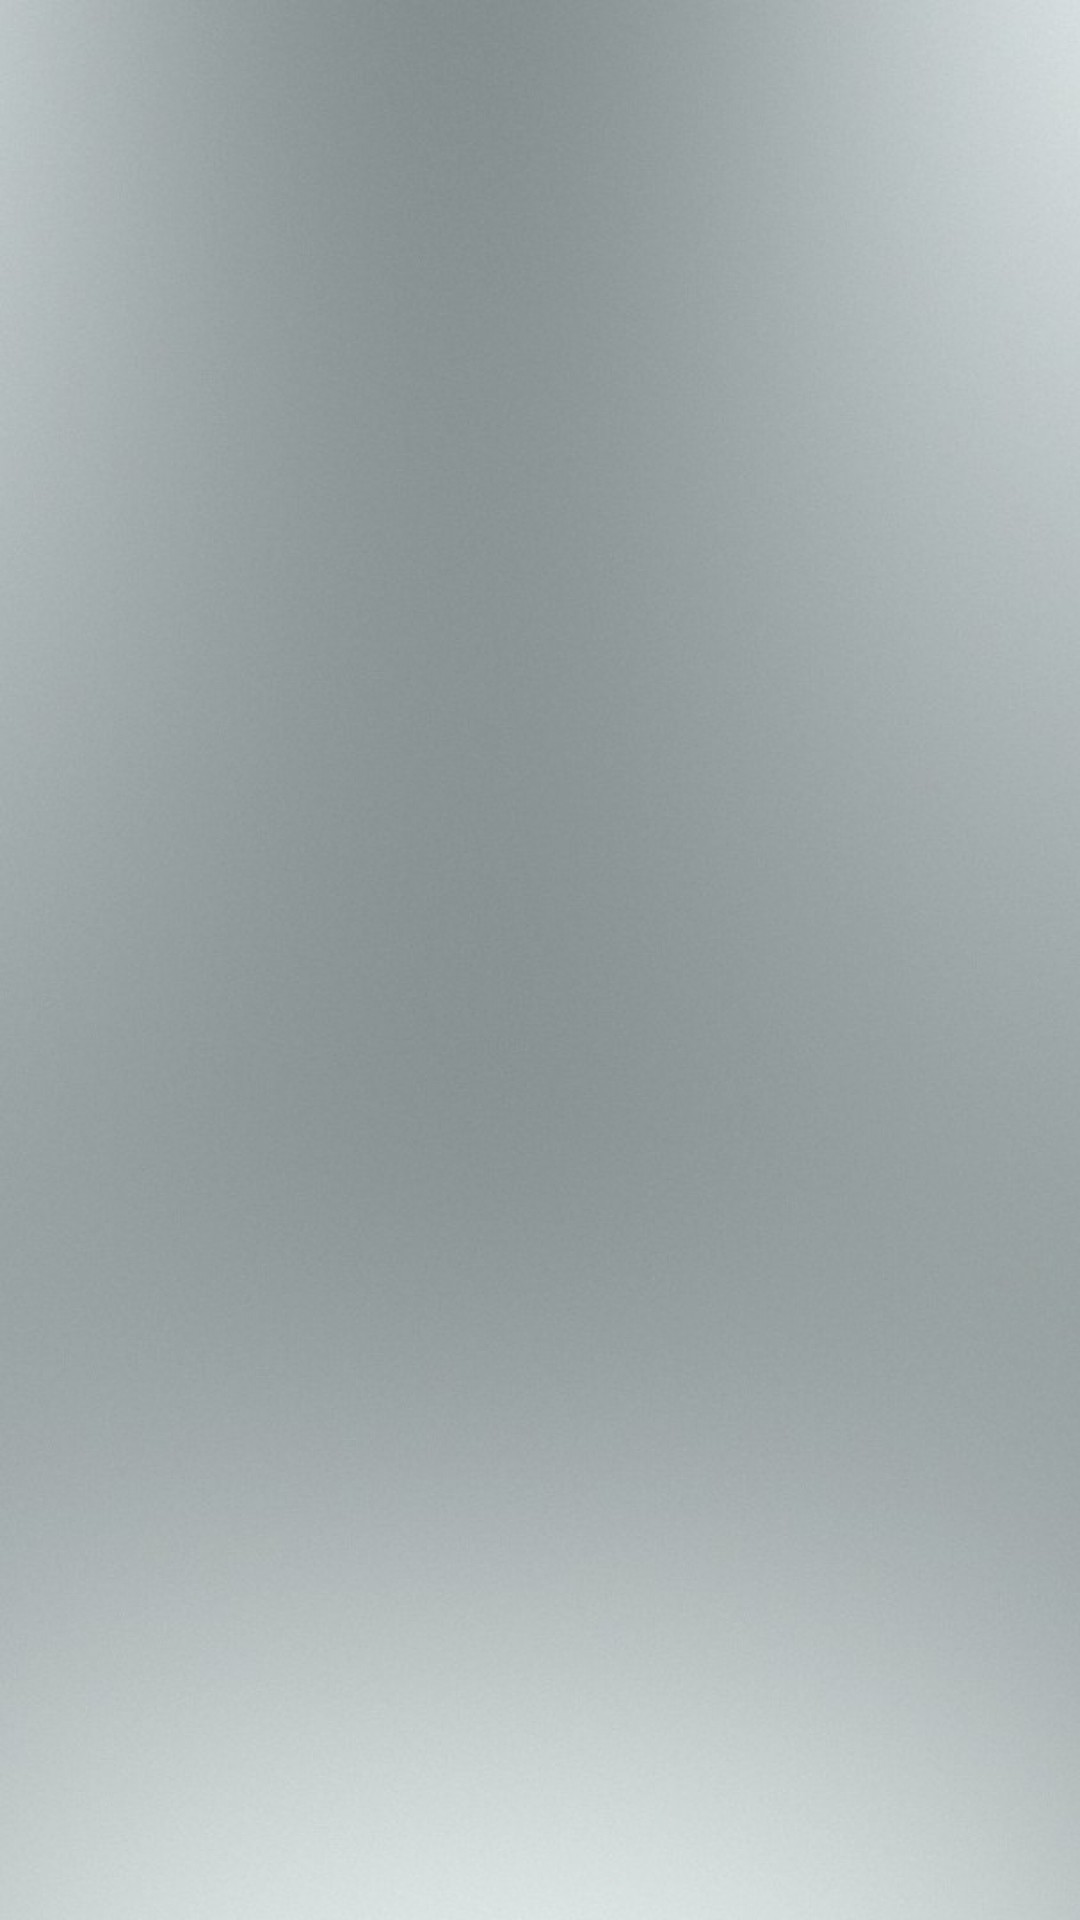 Wallpaper background, gray, abstract, bright